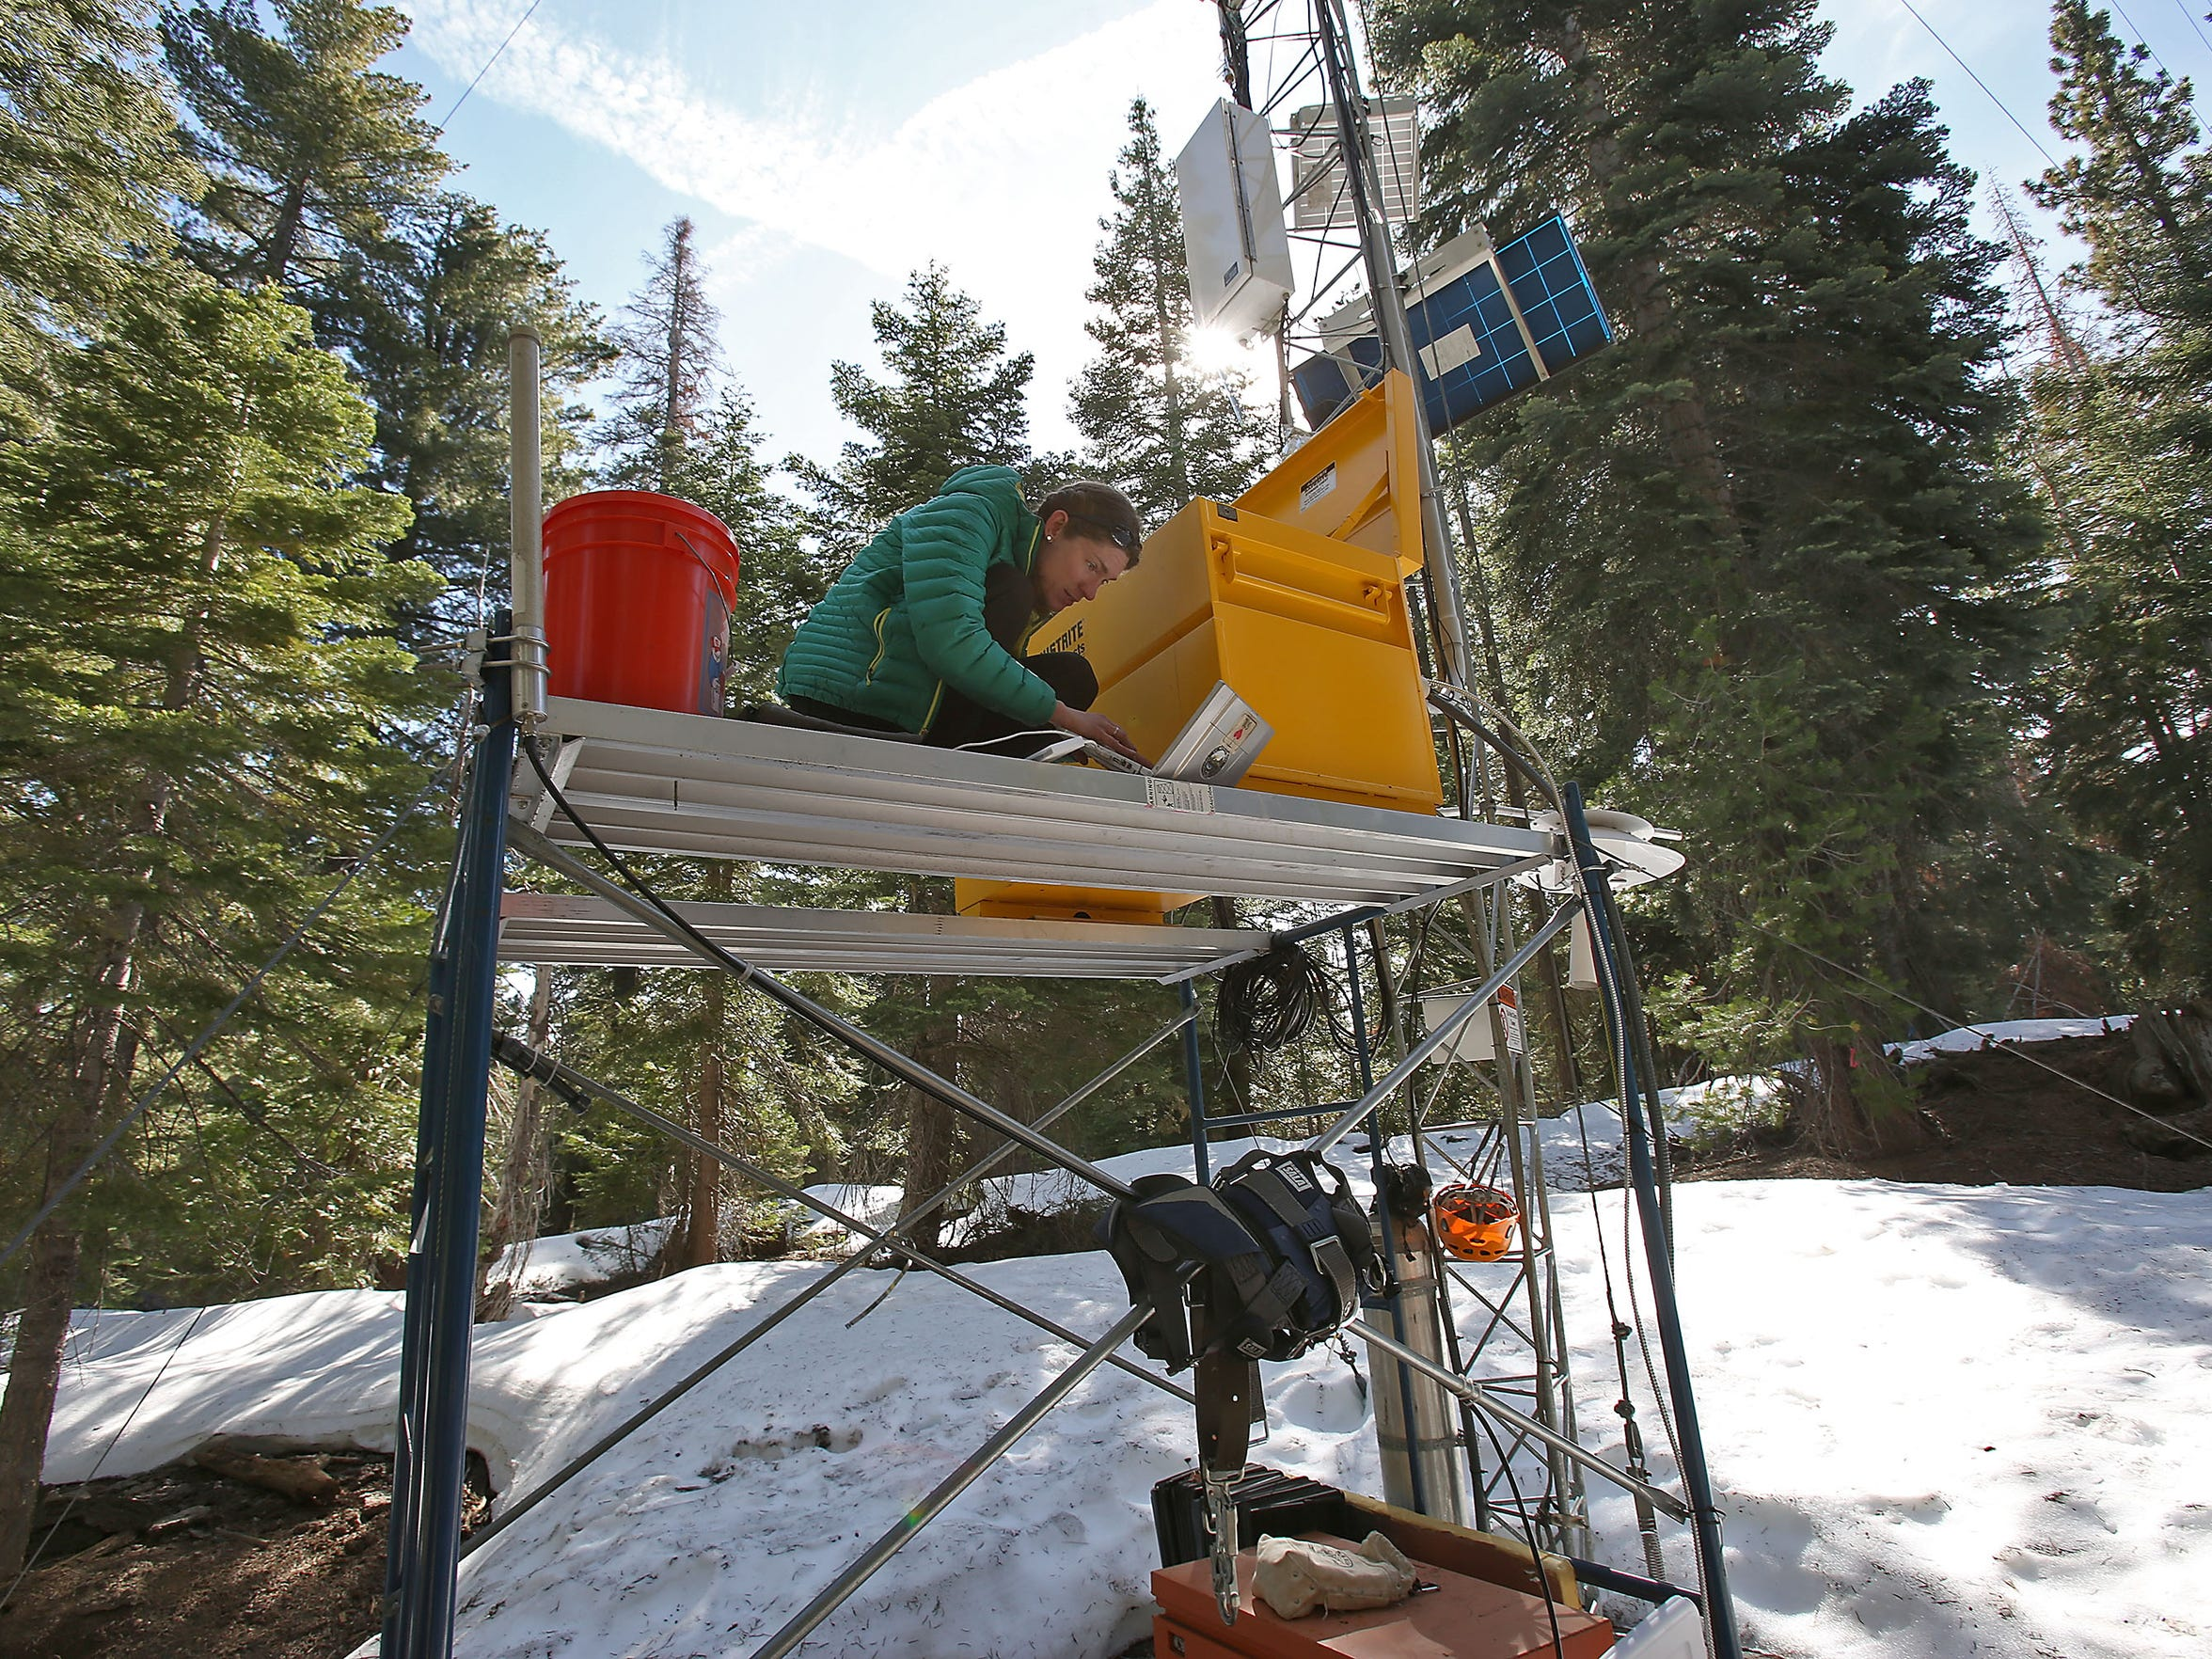 At a research site in the Sierra National Forest, Erin Stacy works with data from instruments that measure water vapor and carbon dioxide in the air, as well as other variables such as temperature, humidity and solar radiation.